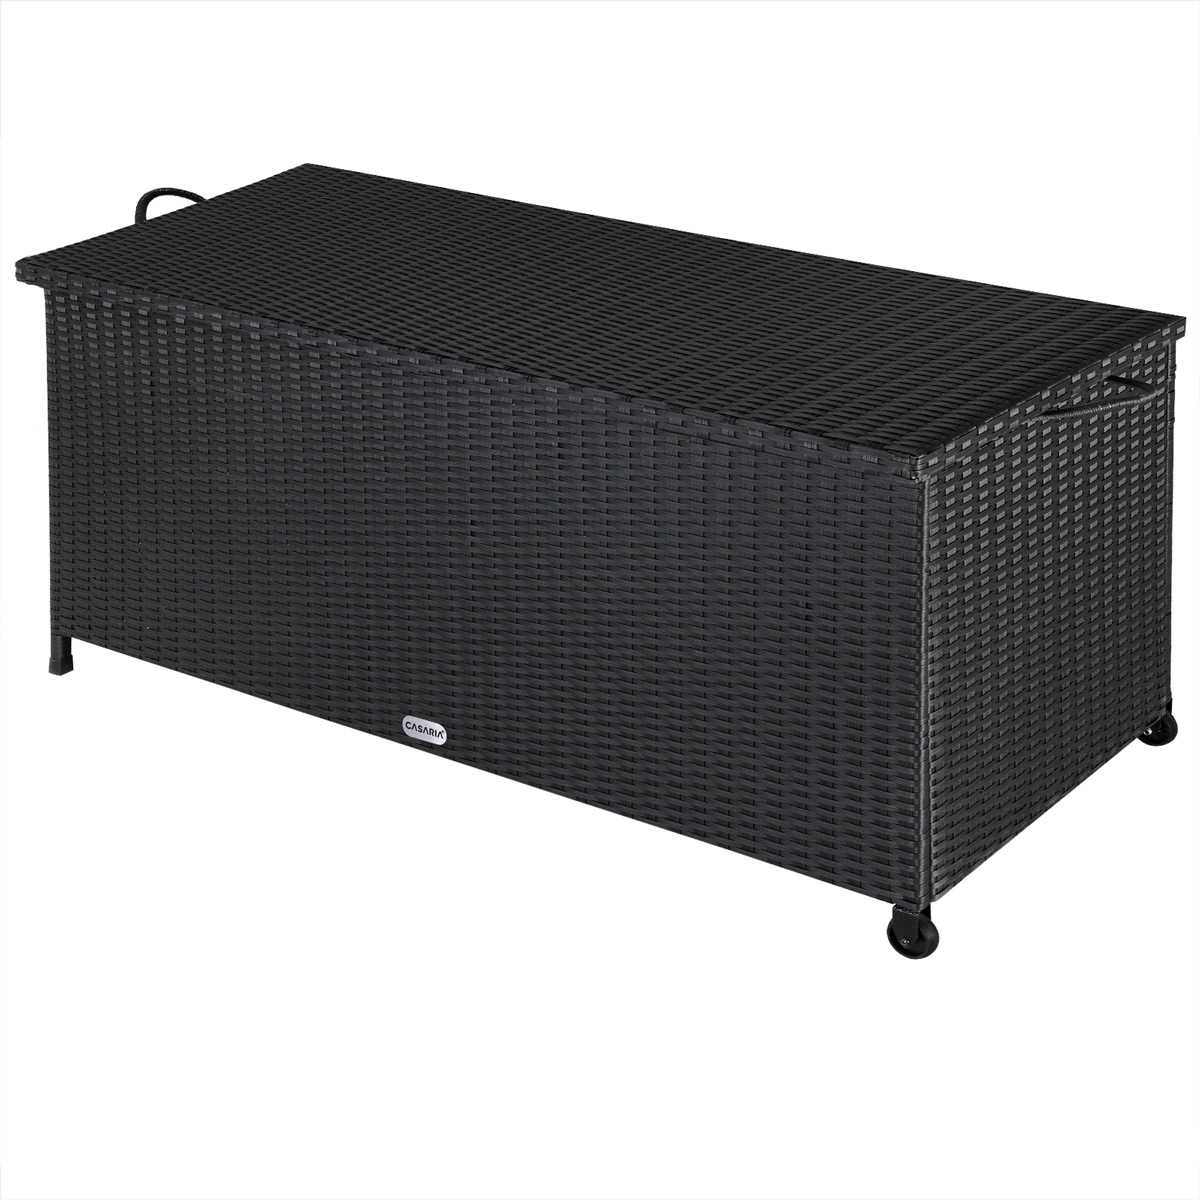 auflagenbox polyrattan gartenbox kissenbox gartentruhe aufbewahrungsbox kiste ebay. Black Bedroom Furniture Sets. Home Design Ideas